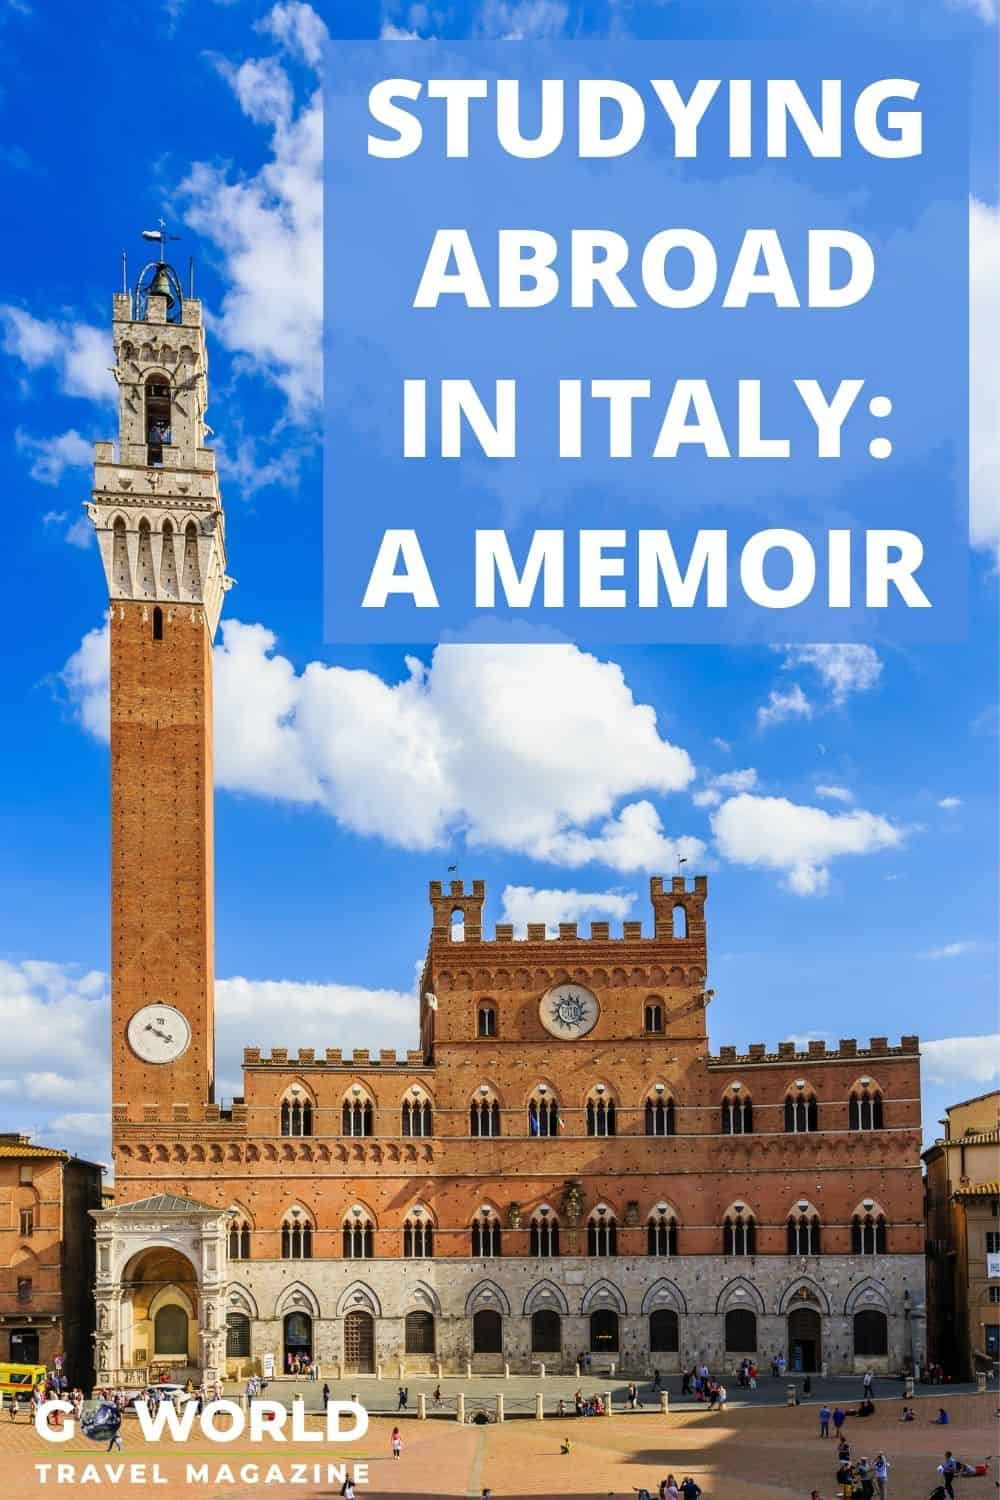 Studying abroad in Italy is a dream of many young people. However, the reality of studying in Siena was not everything this author expected. #sienaitaly #studyabroad #studyabroadinitaly